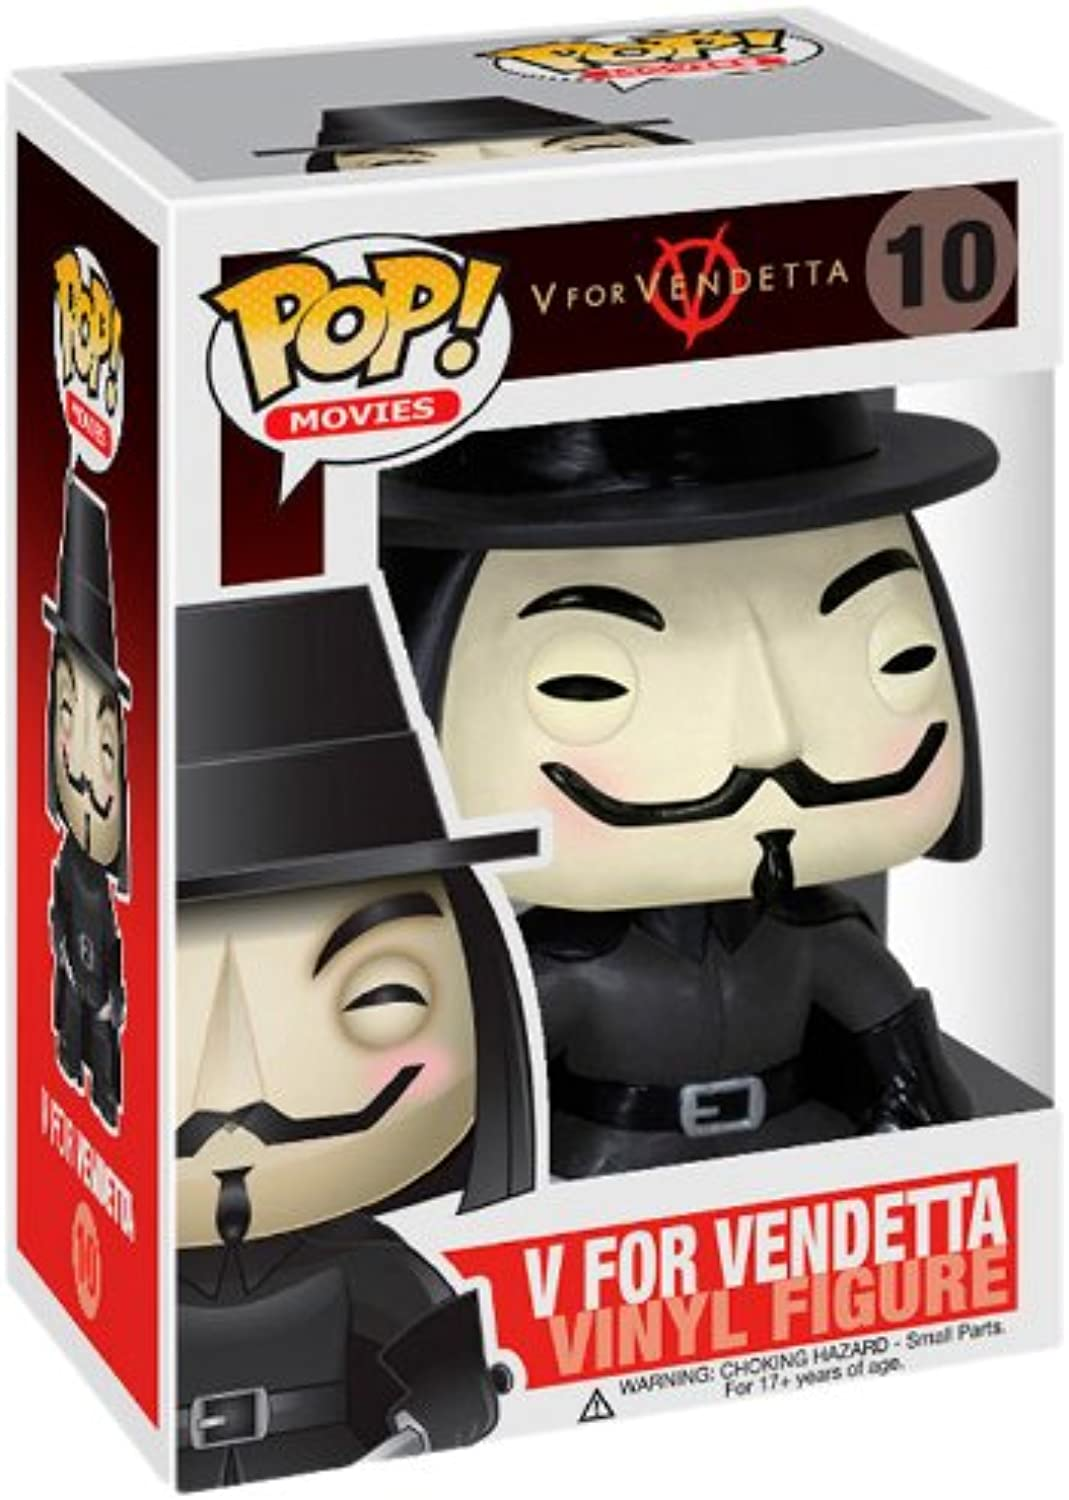 Funko Pop  Movies  V For Vendetta  10